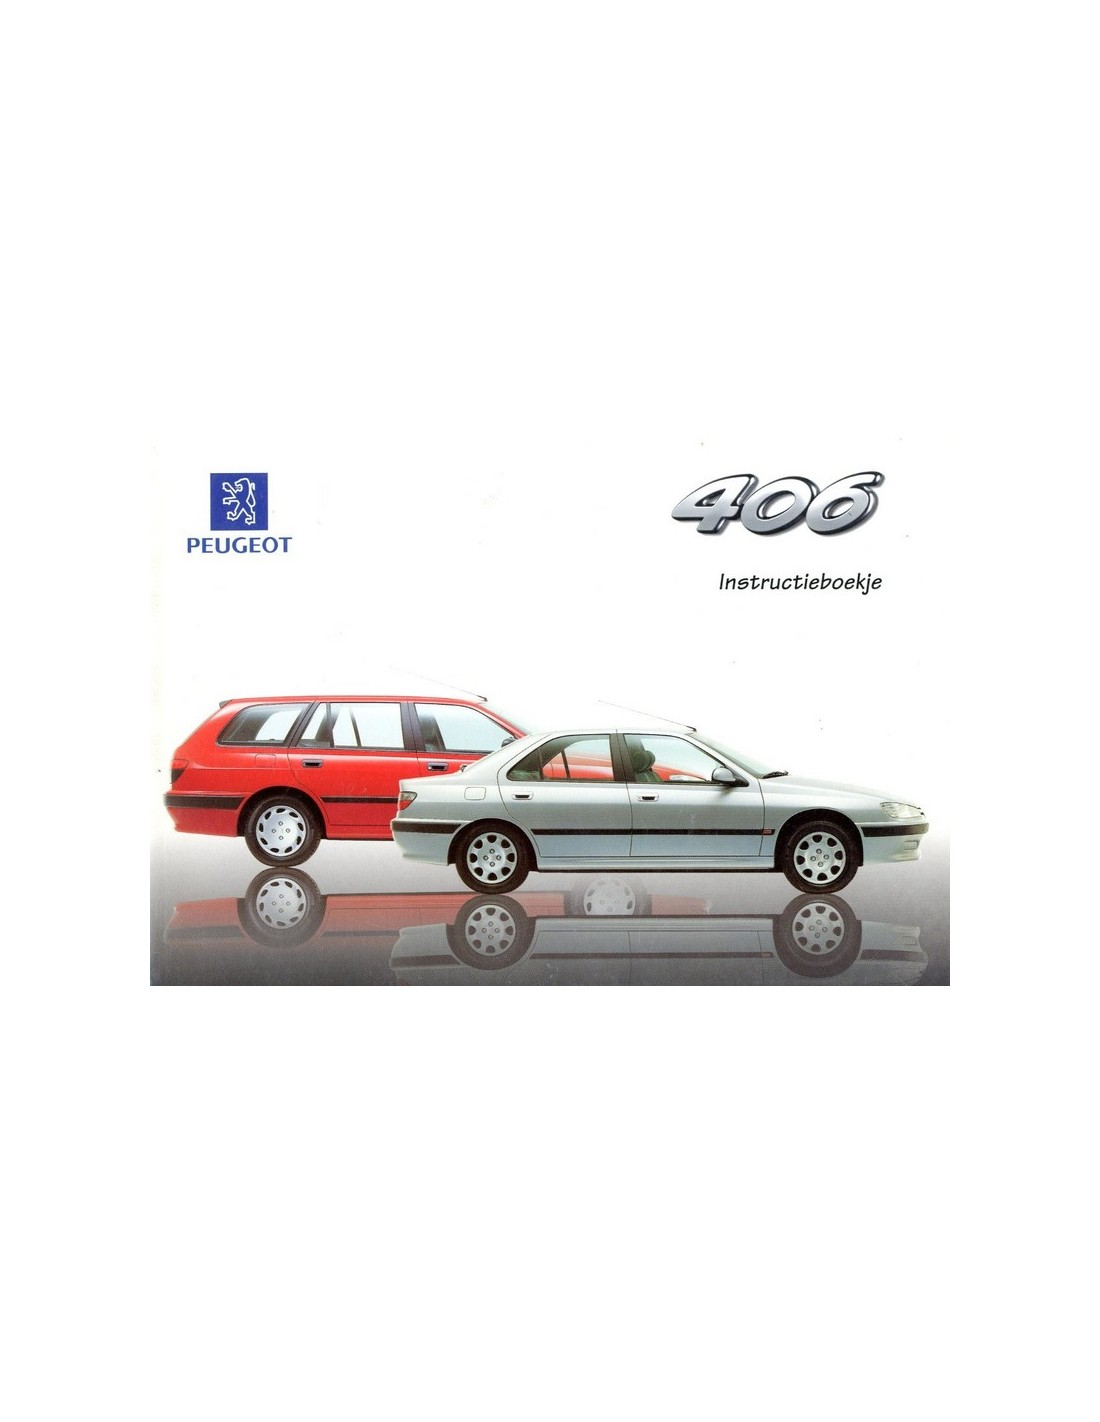 1997 peugeot 406 owner s manual dutch rh autolit eu peugeot 406 owners manual 2000 peugeot 406 service manual free download